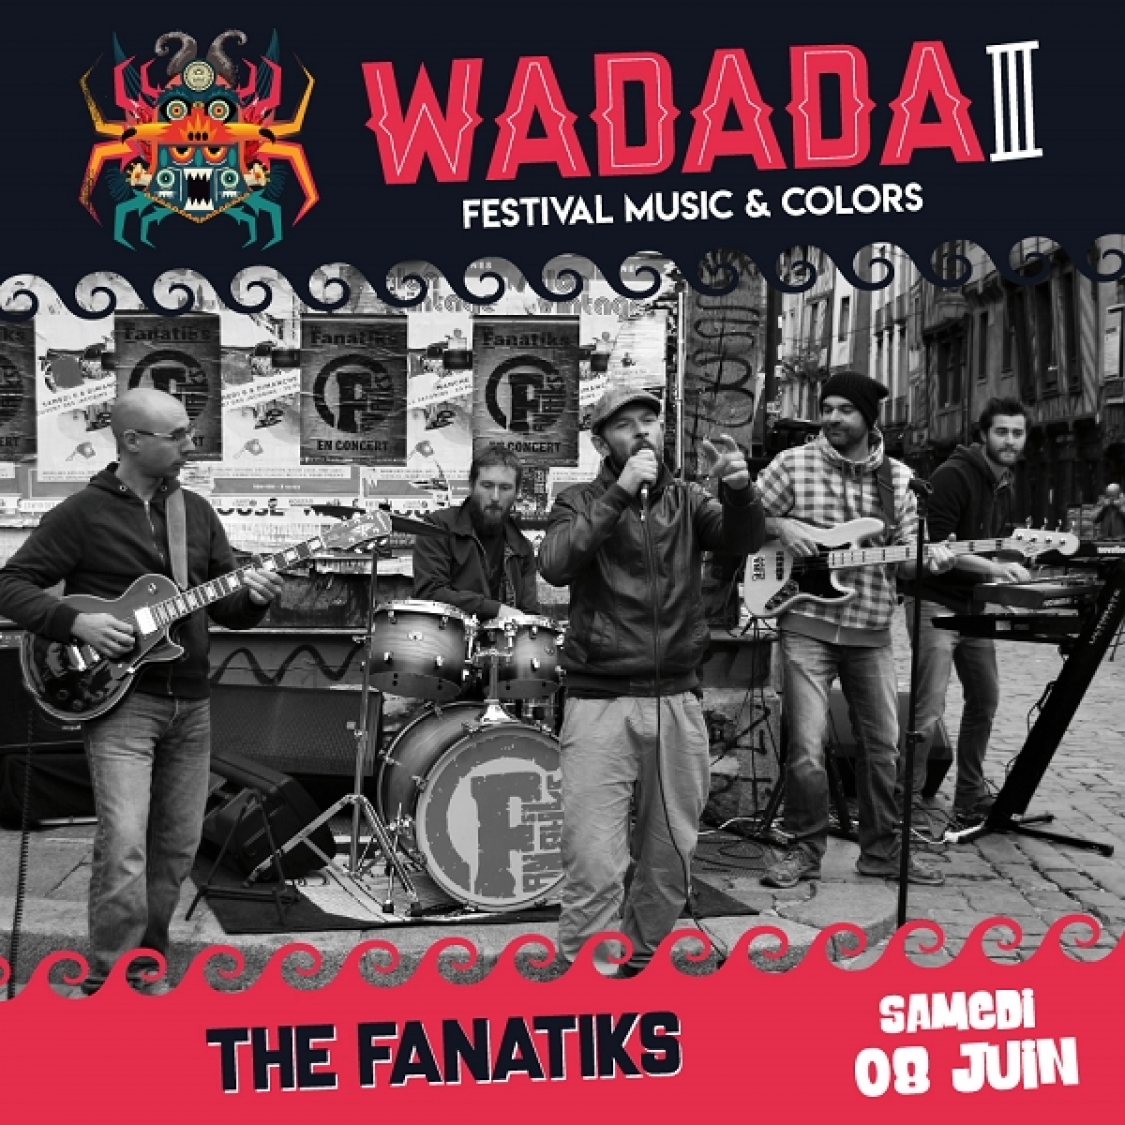 THE FANATIKS